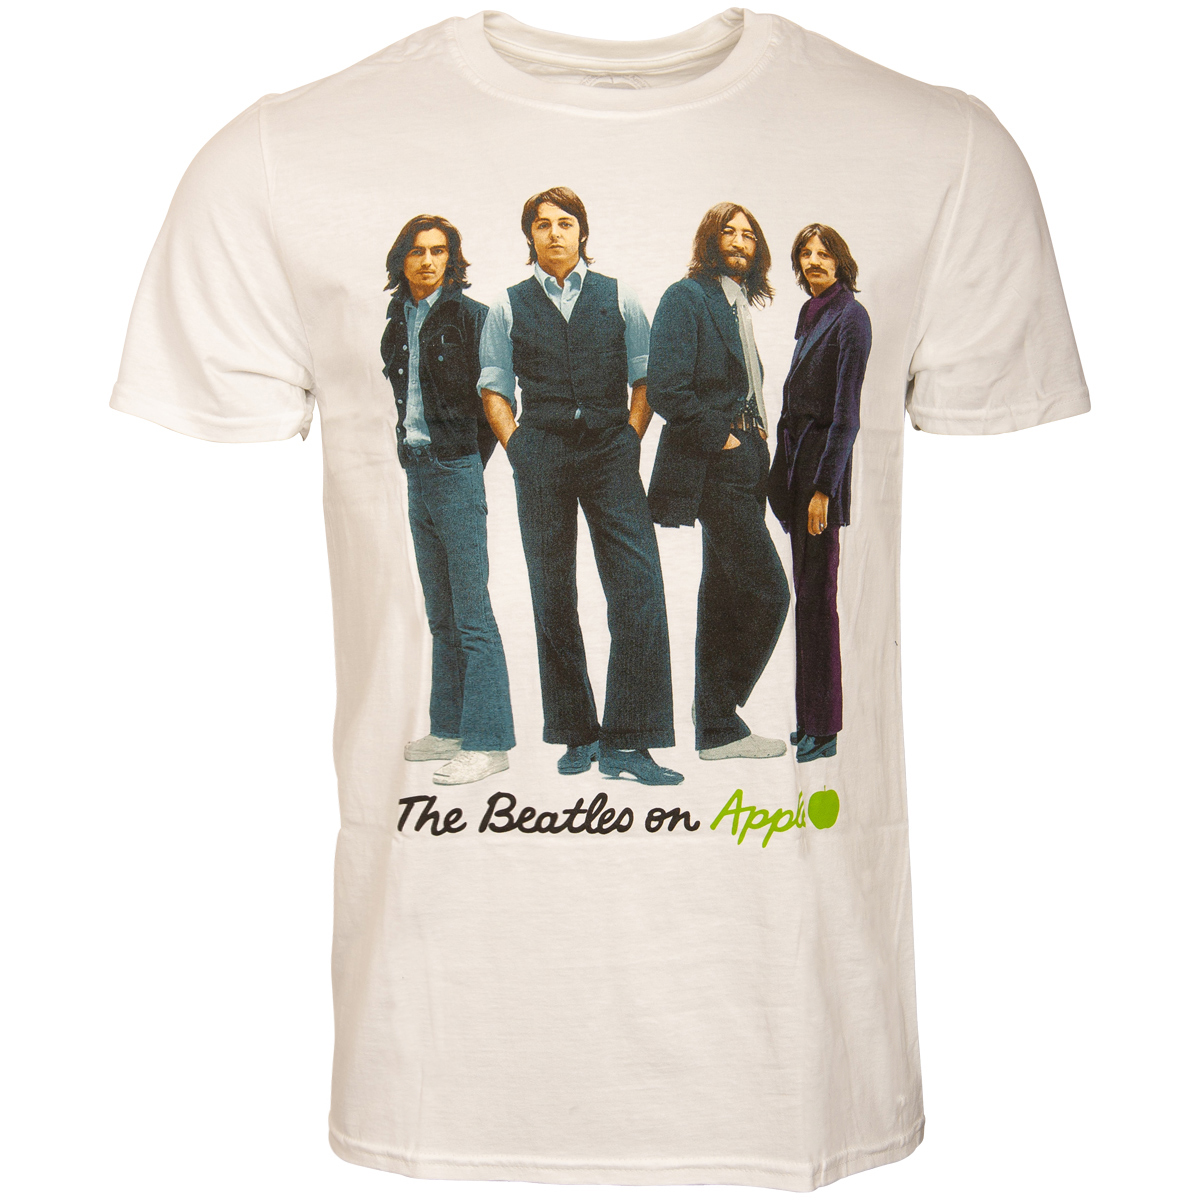 The Beatles - T-Shirt Iconic Image - weiß